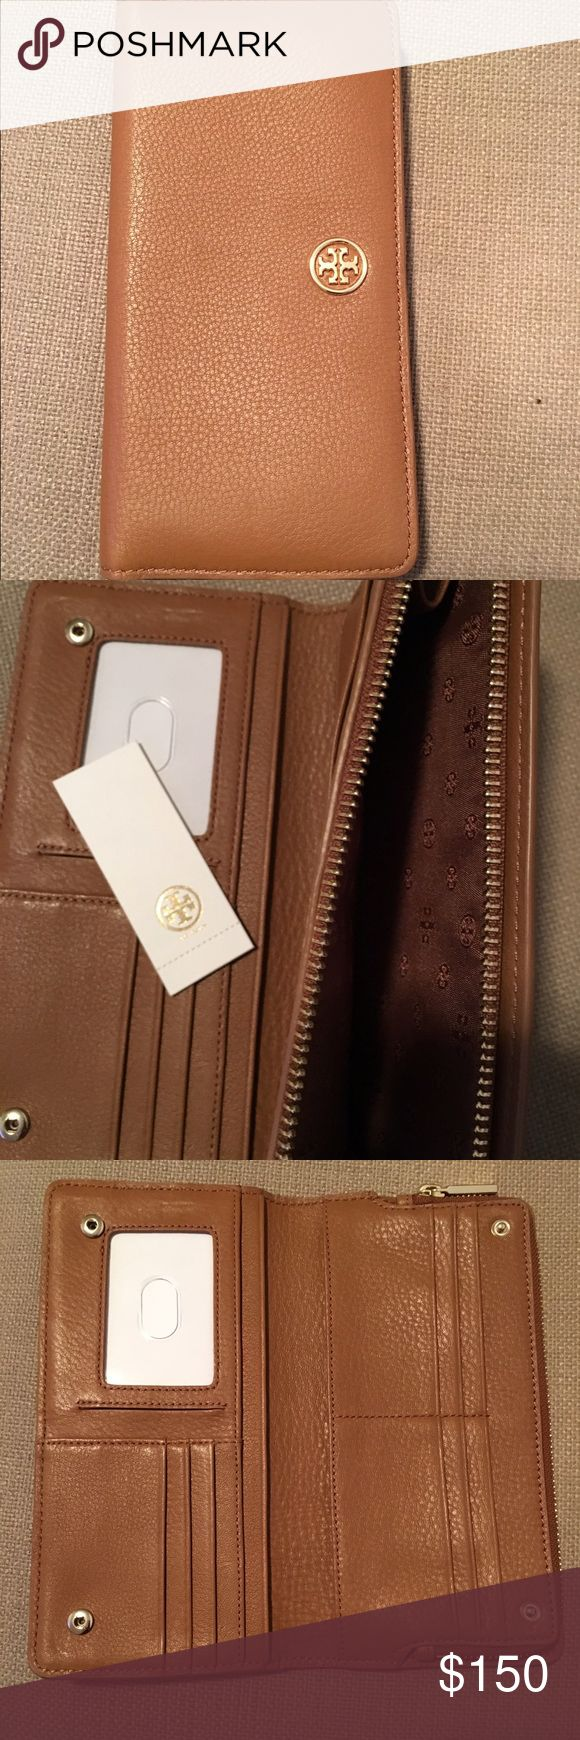 Tory Burch zip continental wallet Brand new Tory Burch Landon hidden zip continental wallet in bark color Tory Burch Bags Wallets